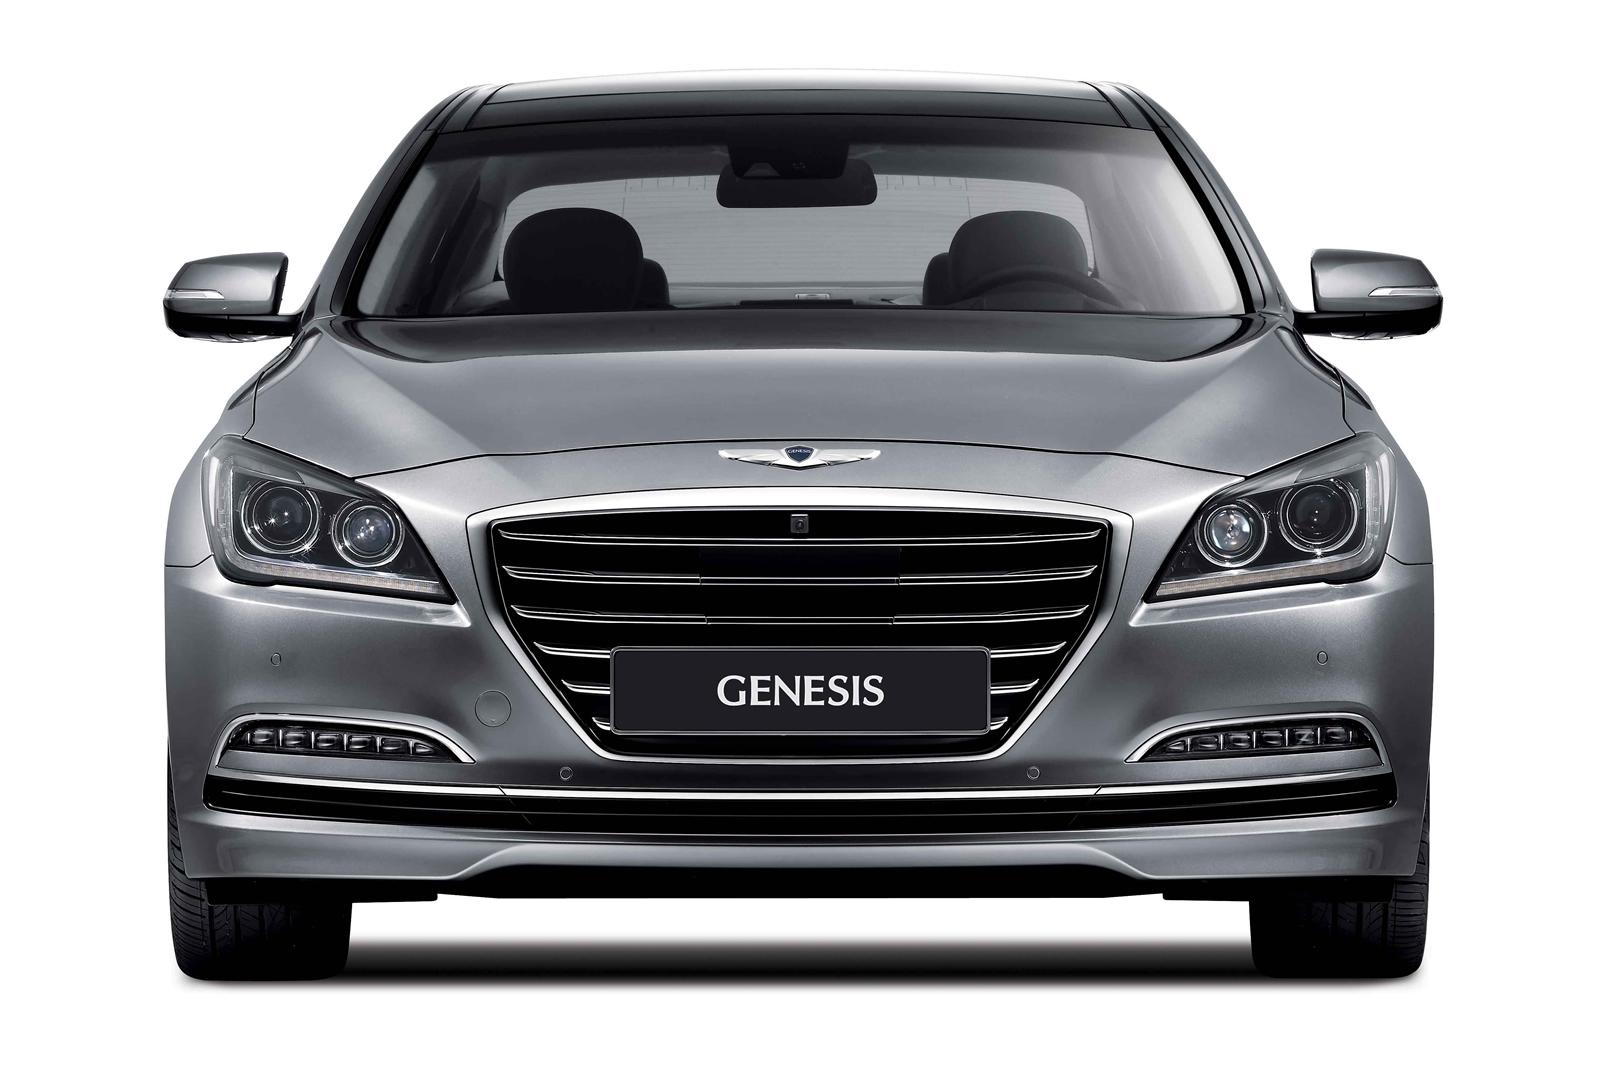 2015 Hyundai Genesis Front End (View 3 of 11)